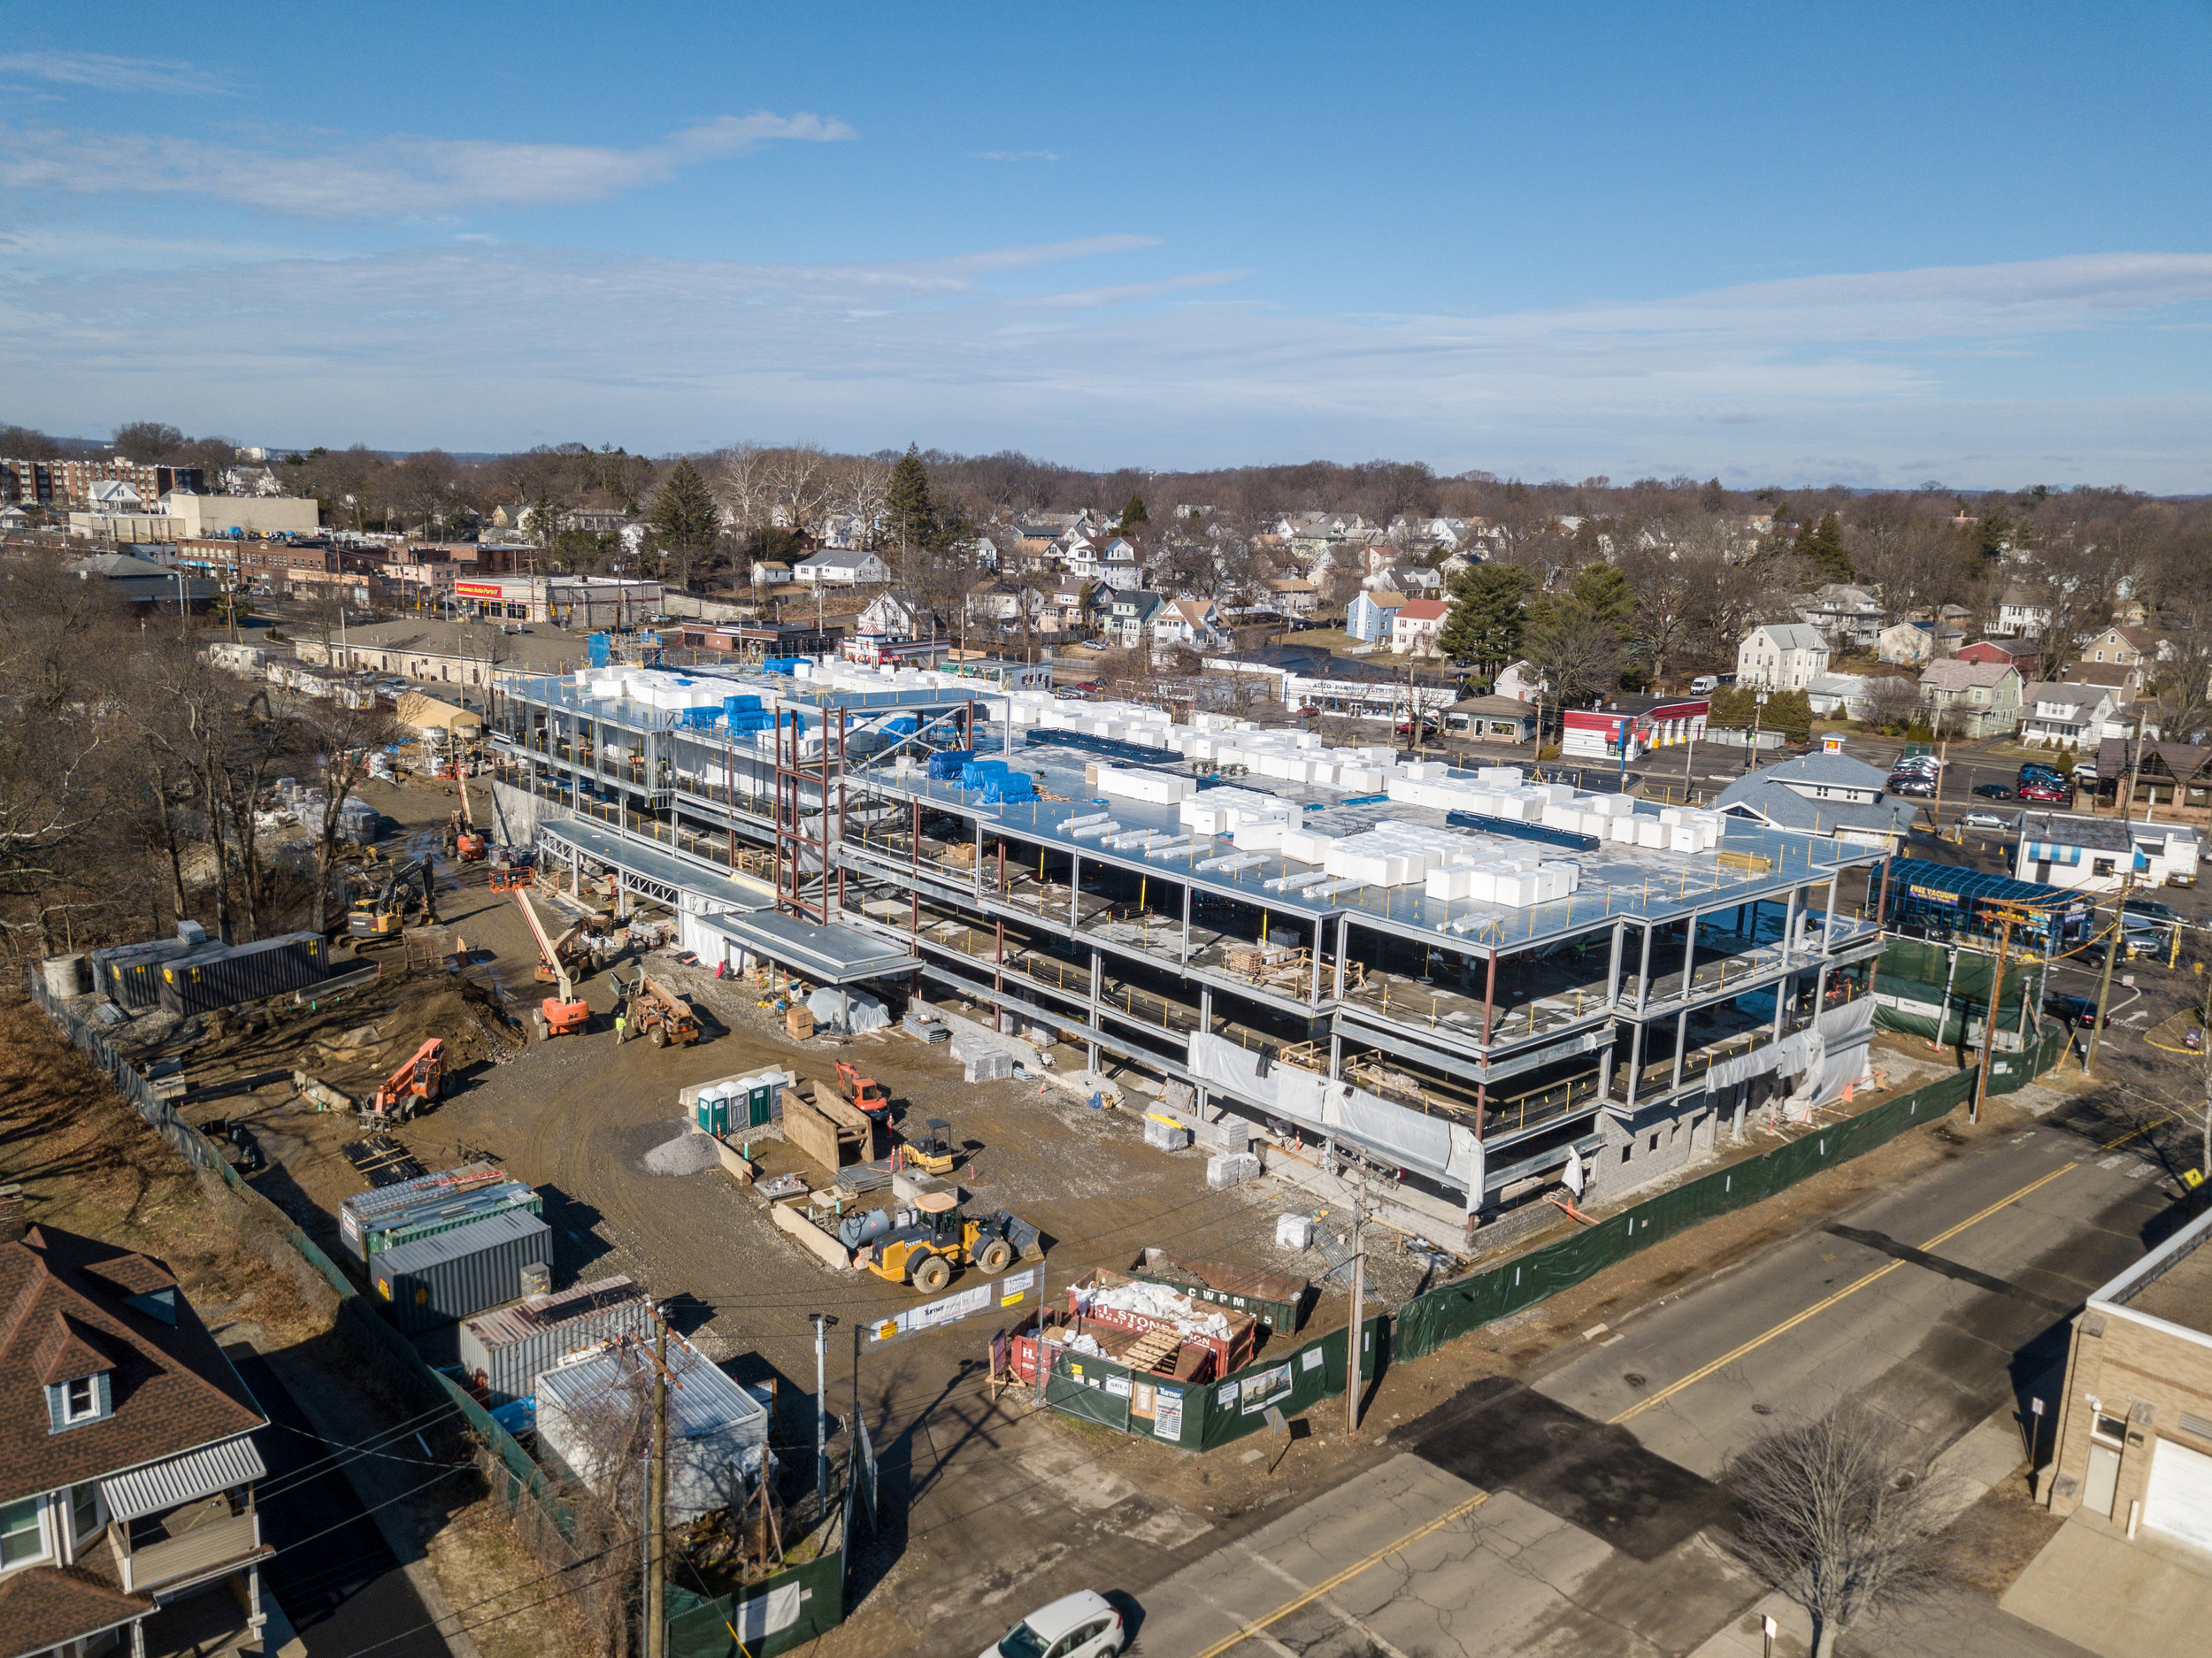 Stratford High Construction 0008 2018-02-24.jpg